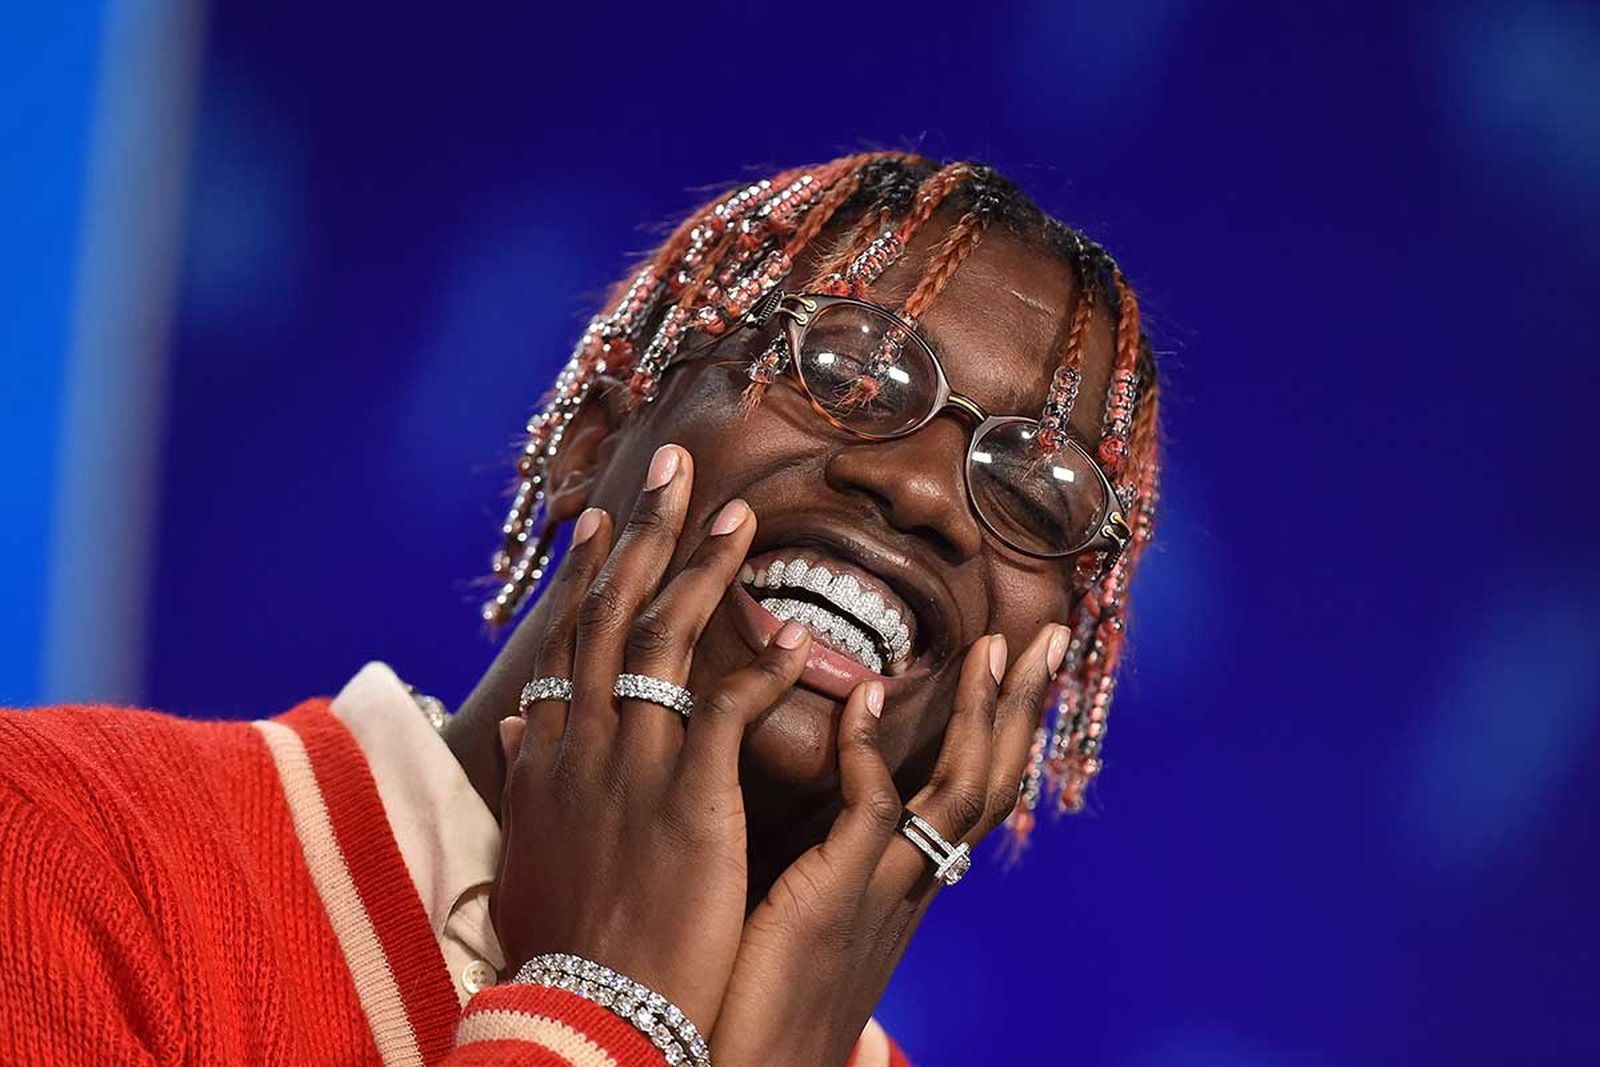 Lil Yachty smiling